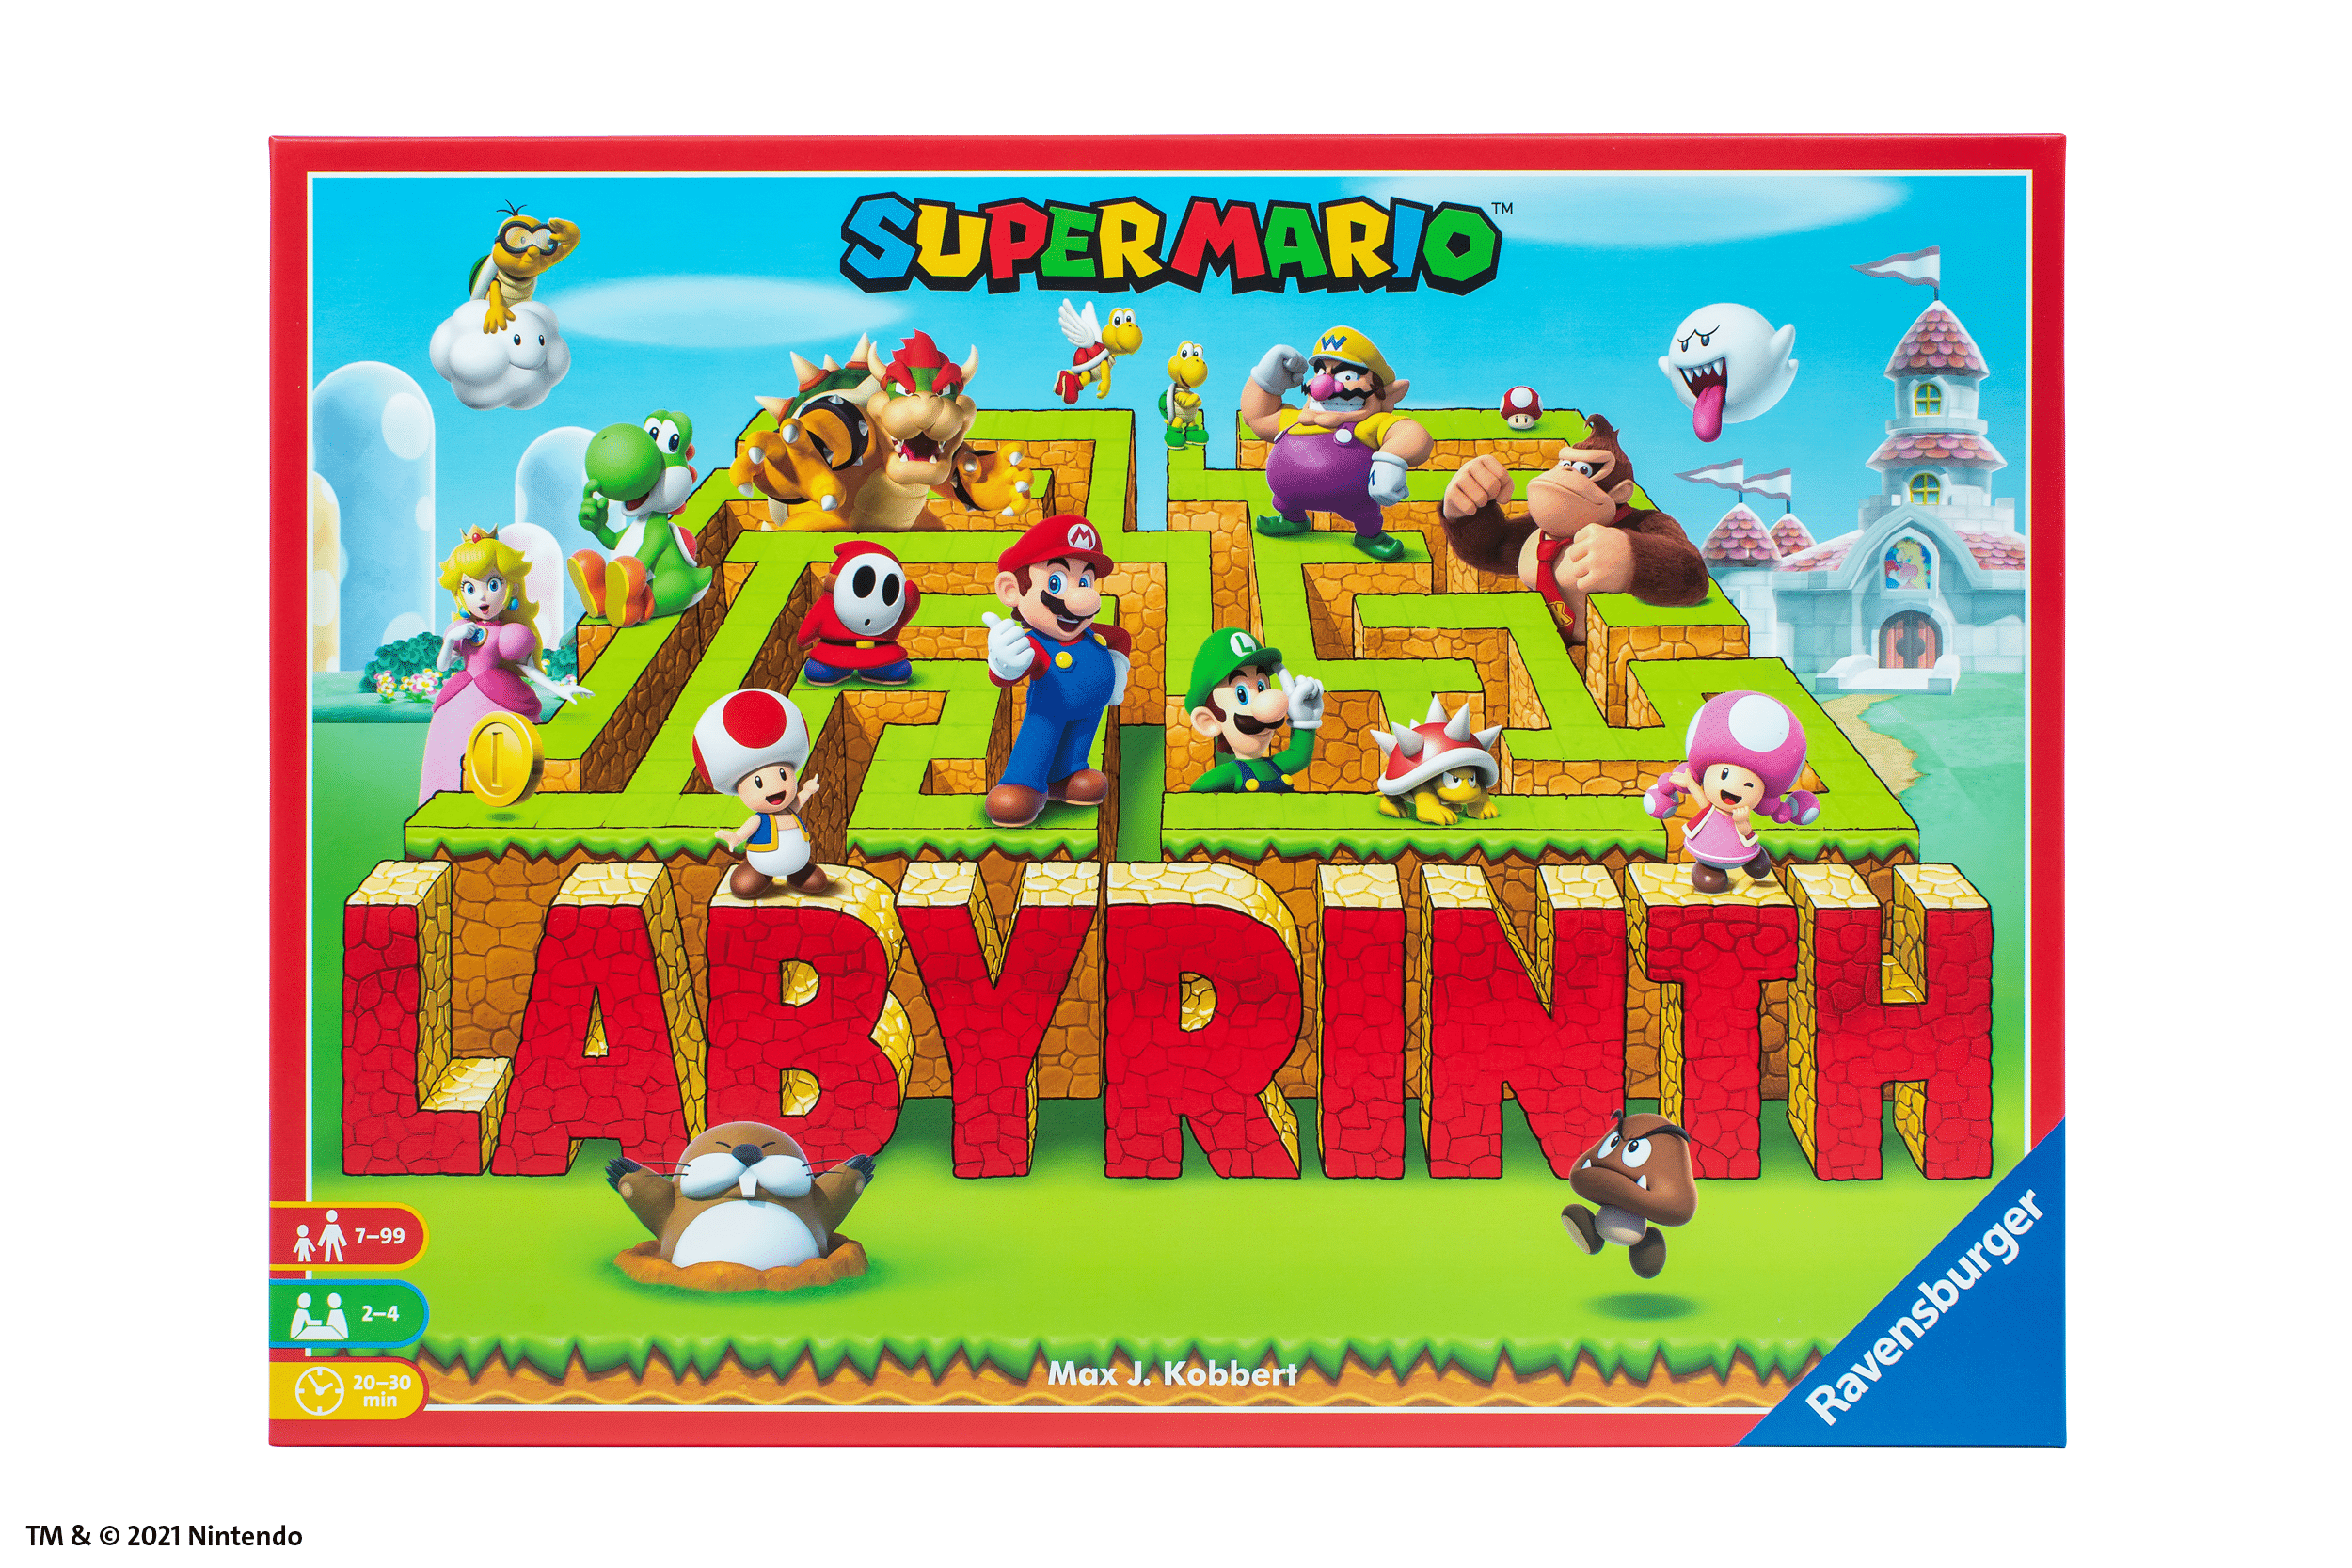 A Super Mario edition of Labyrinth is now available for preorder 17